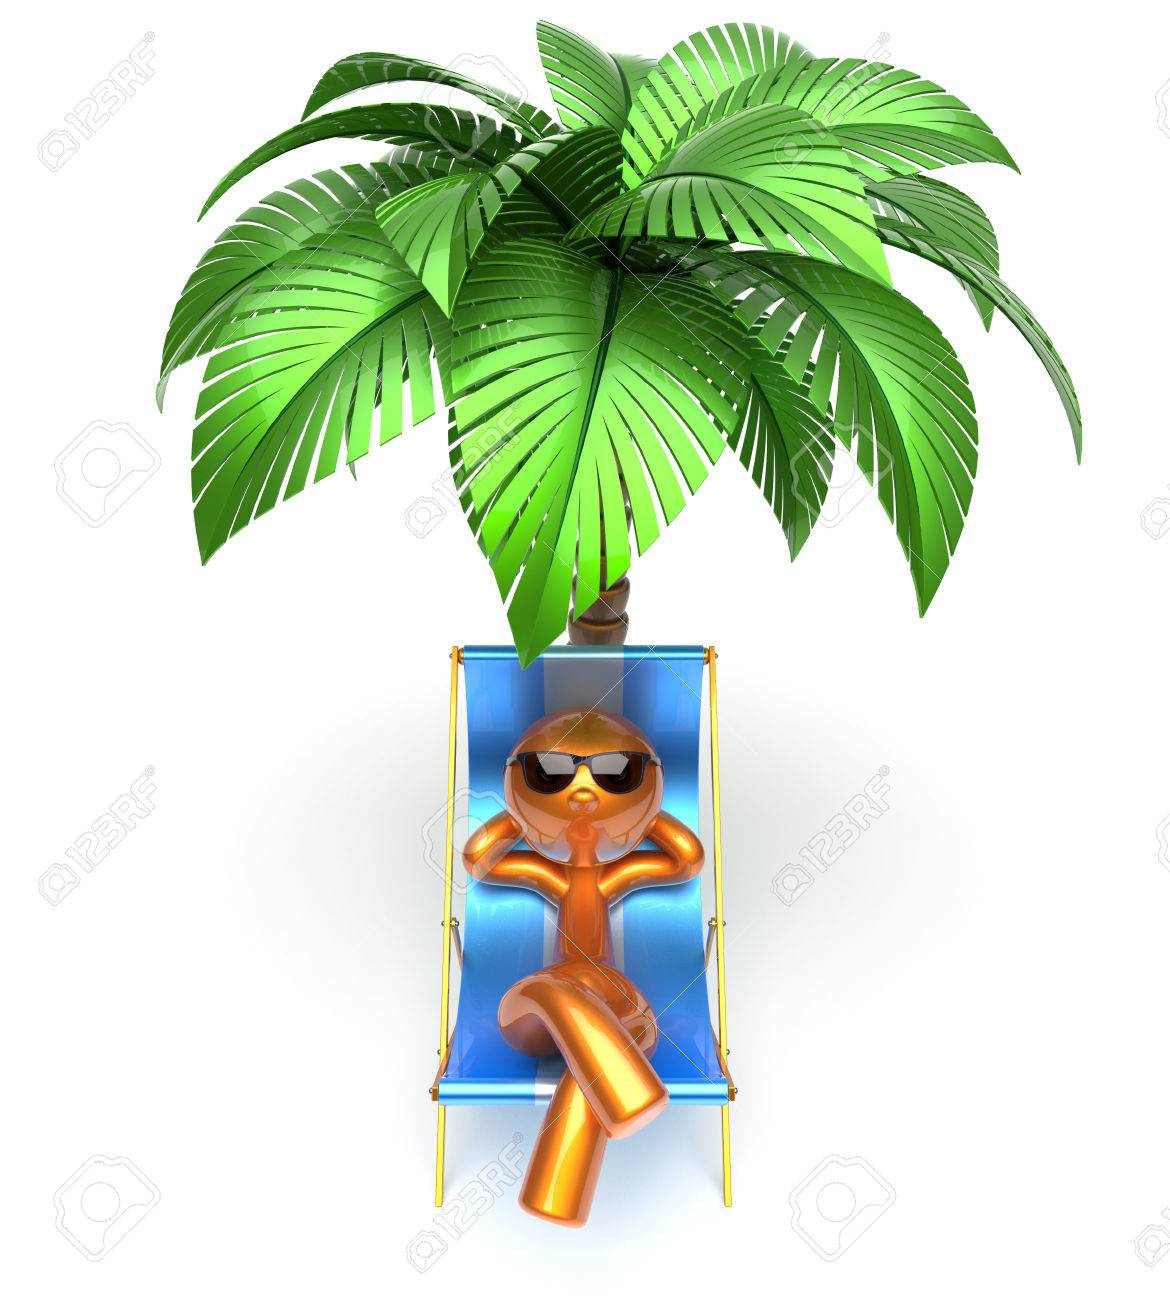 Sonnenliege clipart  Man Character Relaxing Deck Chair Palm Tree Chilling Beach ...